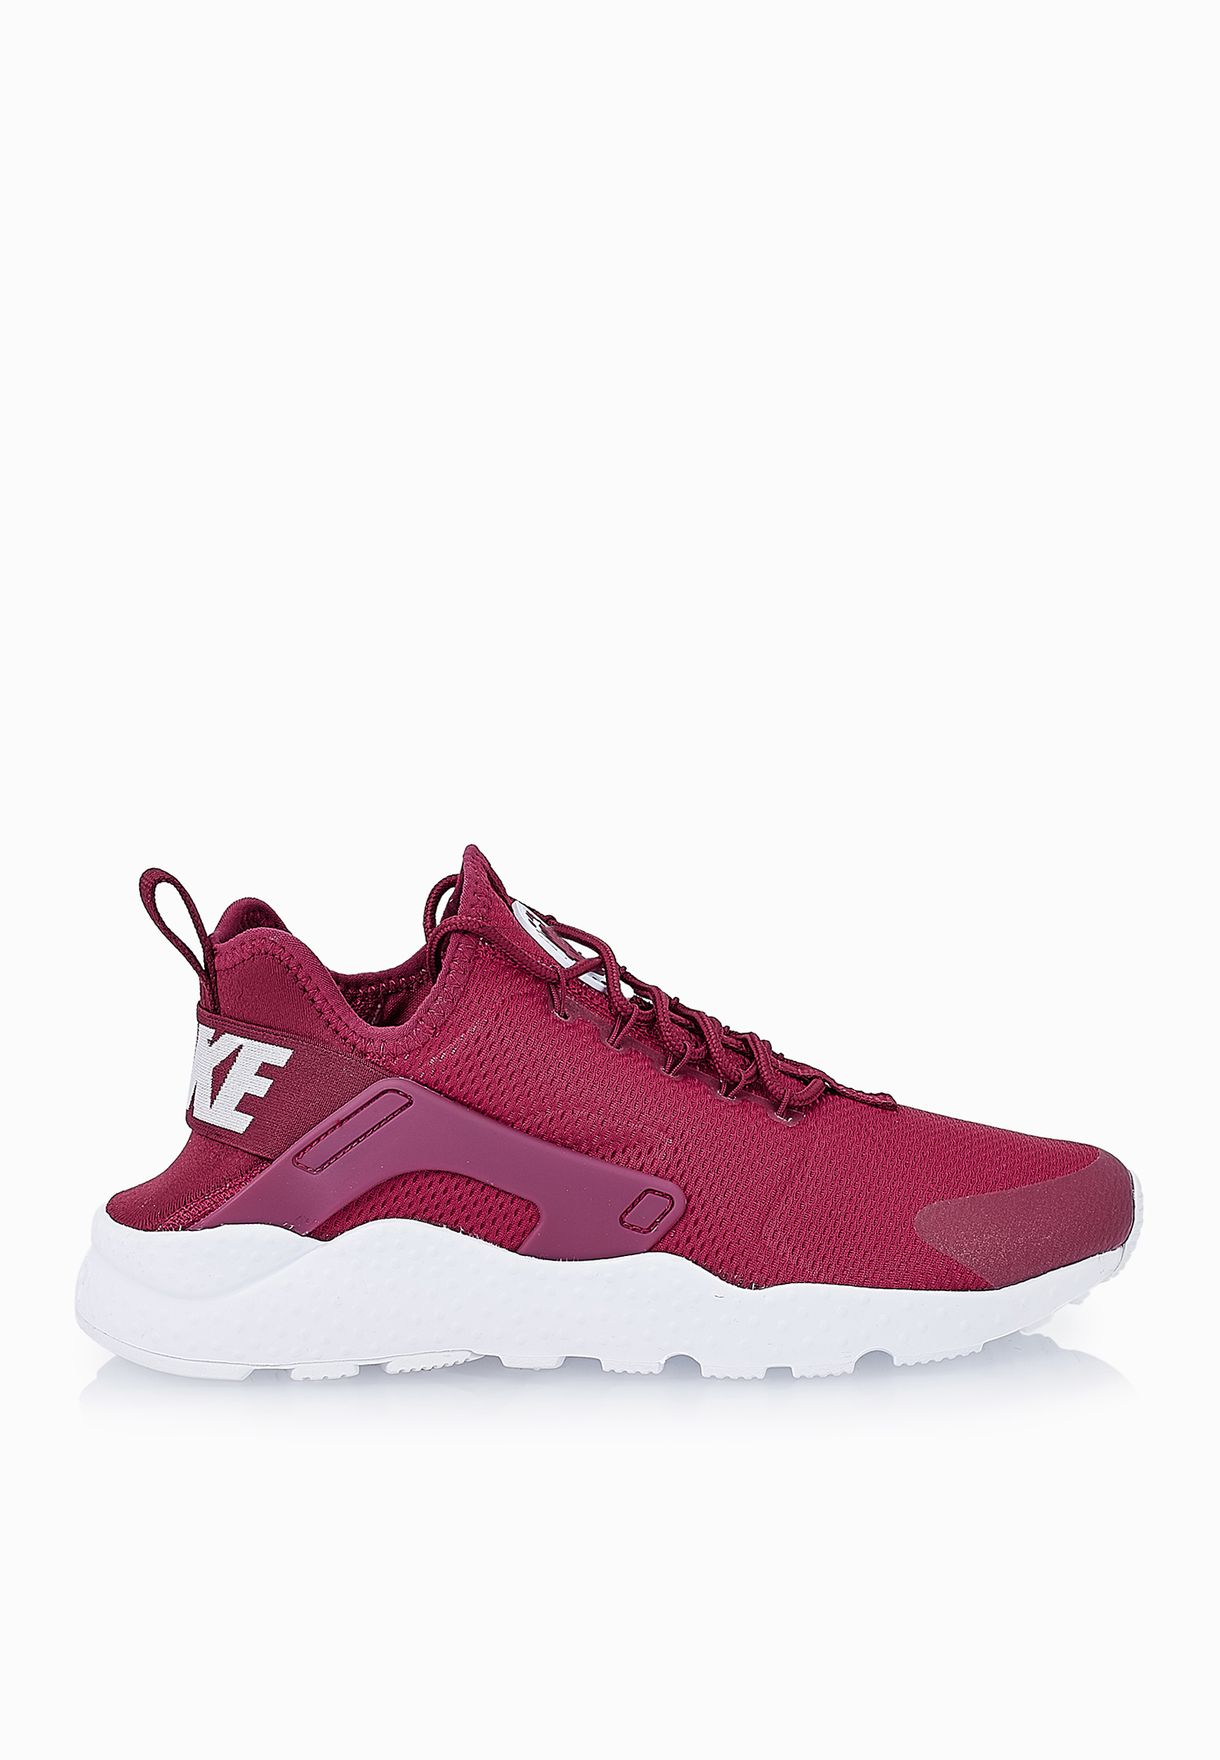 2fc3185dc5 Shop Nike burgundy Air Huarache Run Ultra 819151-601 for Women in ...